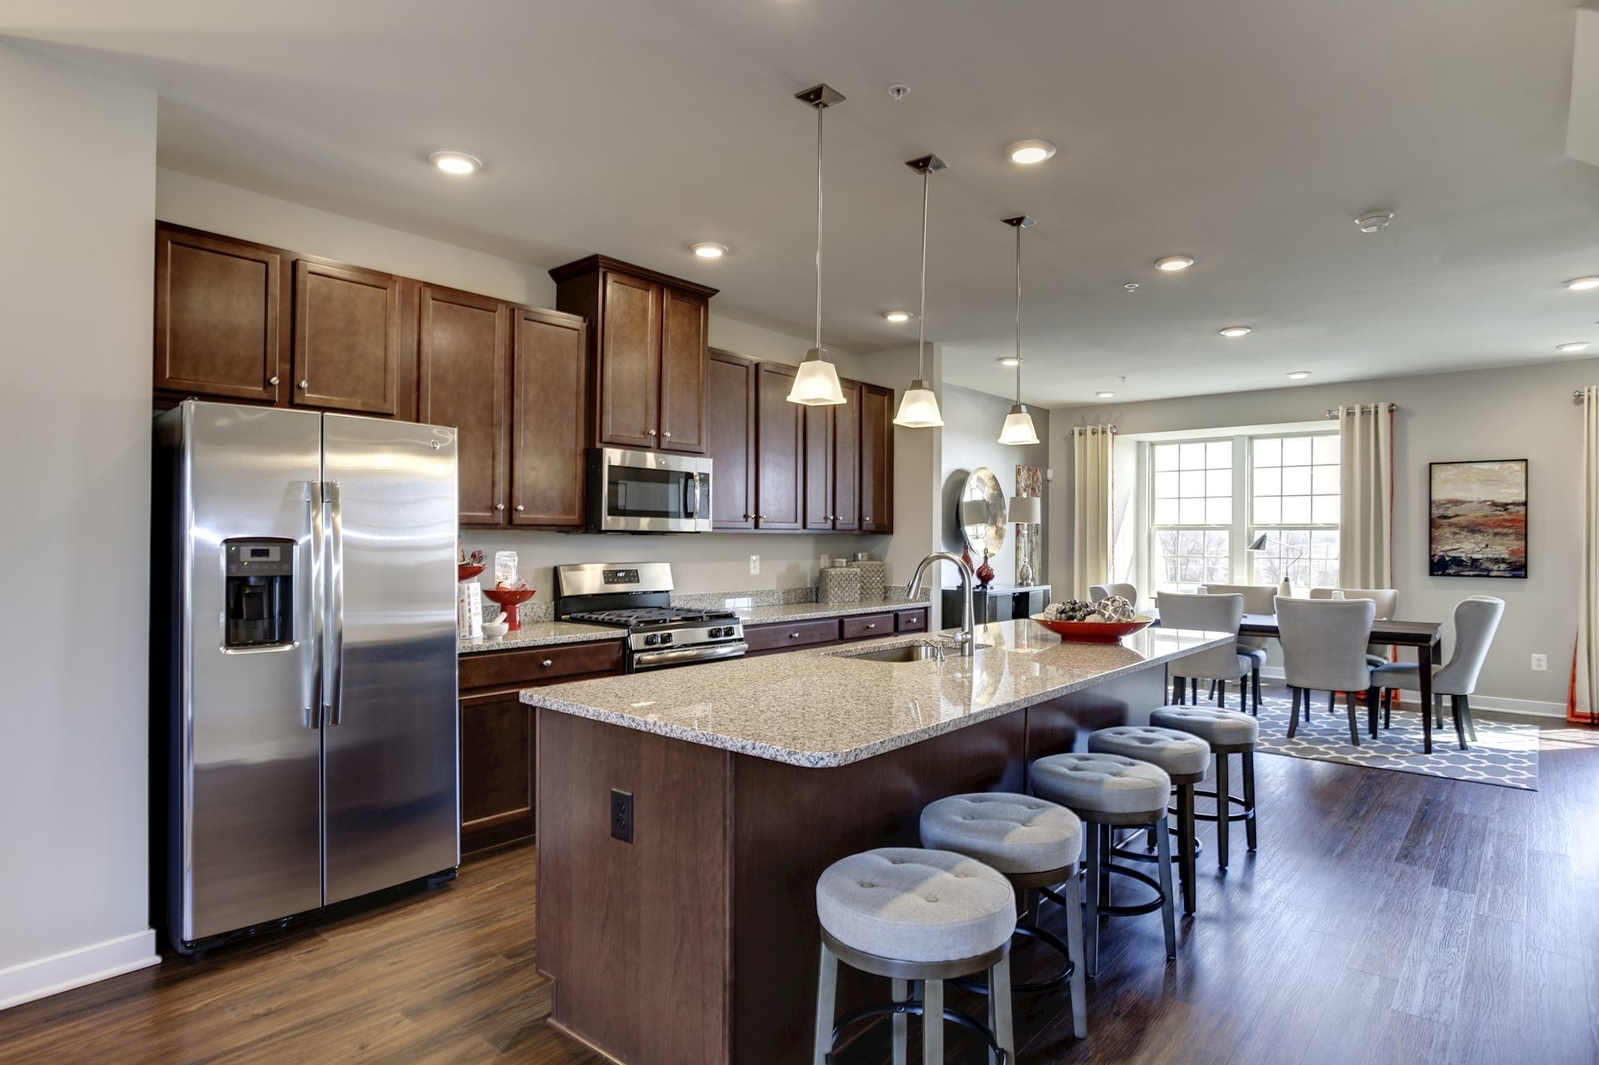 New Schubert Townhome Model For Sale At Pondview Townhomes In Millersville,  MD